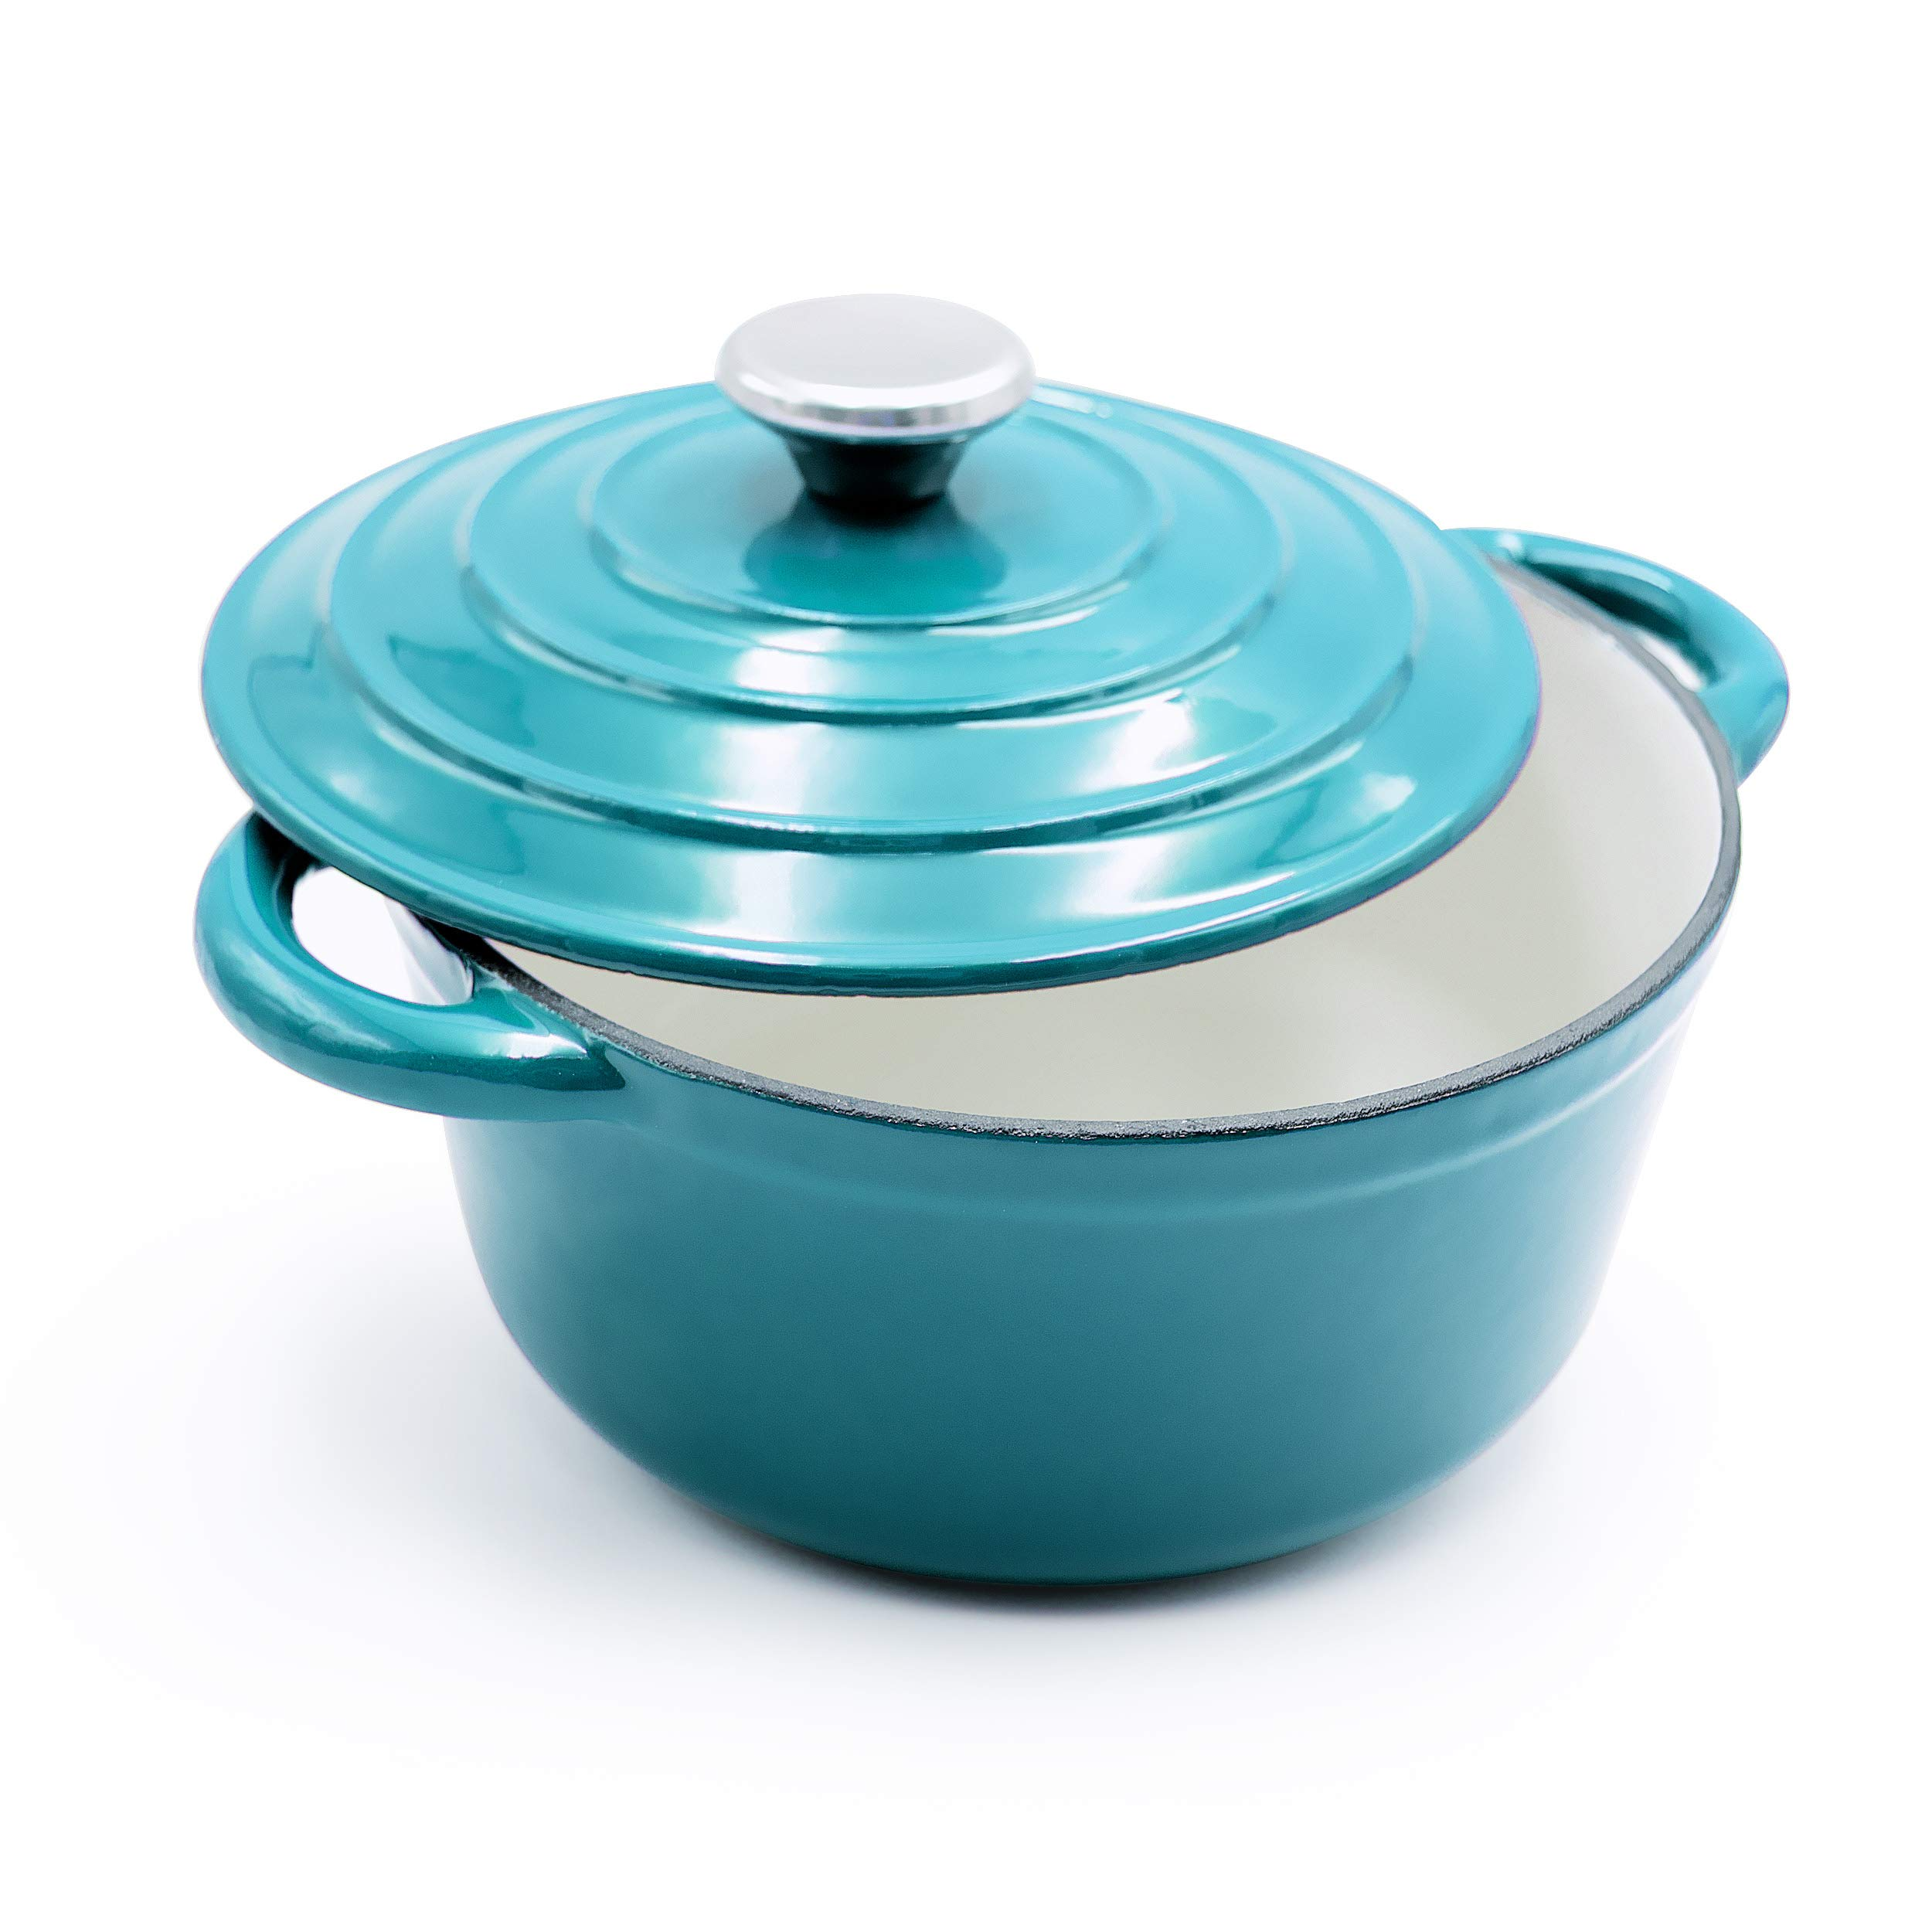 Enameled Cast Iron Dutch Oven - 5-Quart Turquoise Blue Round Ceramic Coated Cookware French Oven with Self Basting Lid by AIDEA by AIDEA (Image #1)